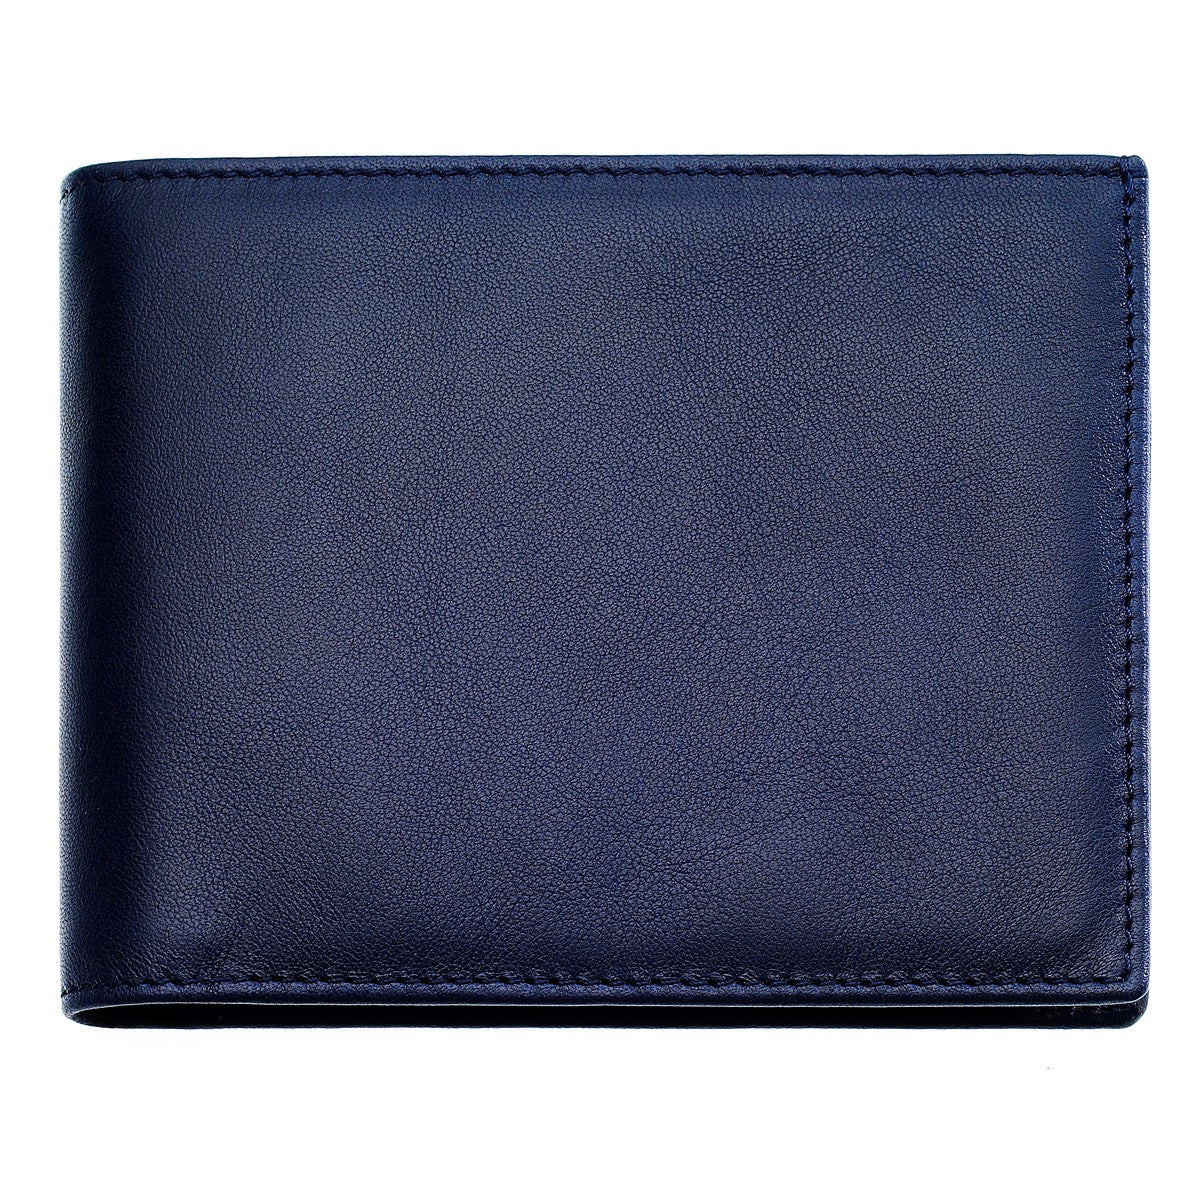 Portefeuille London Bleu marine